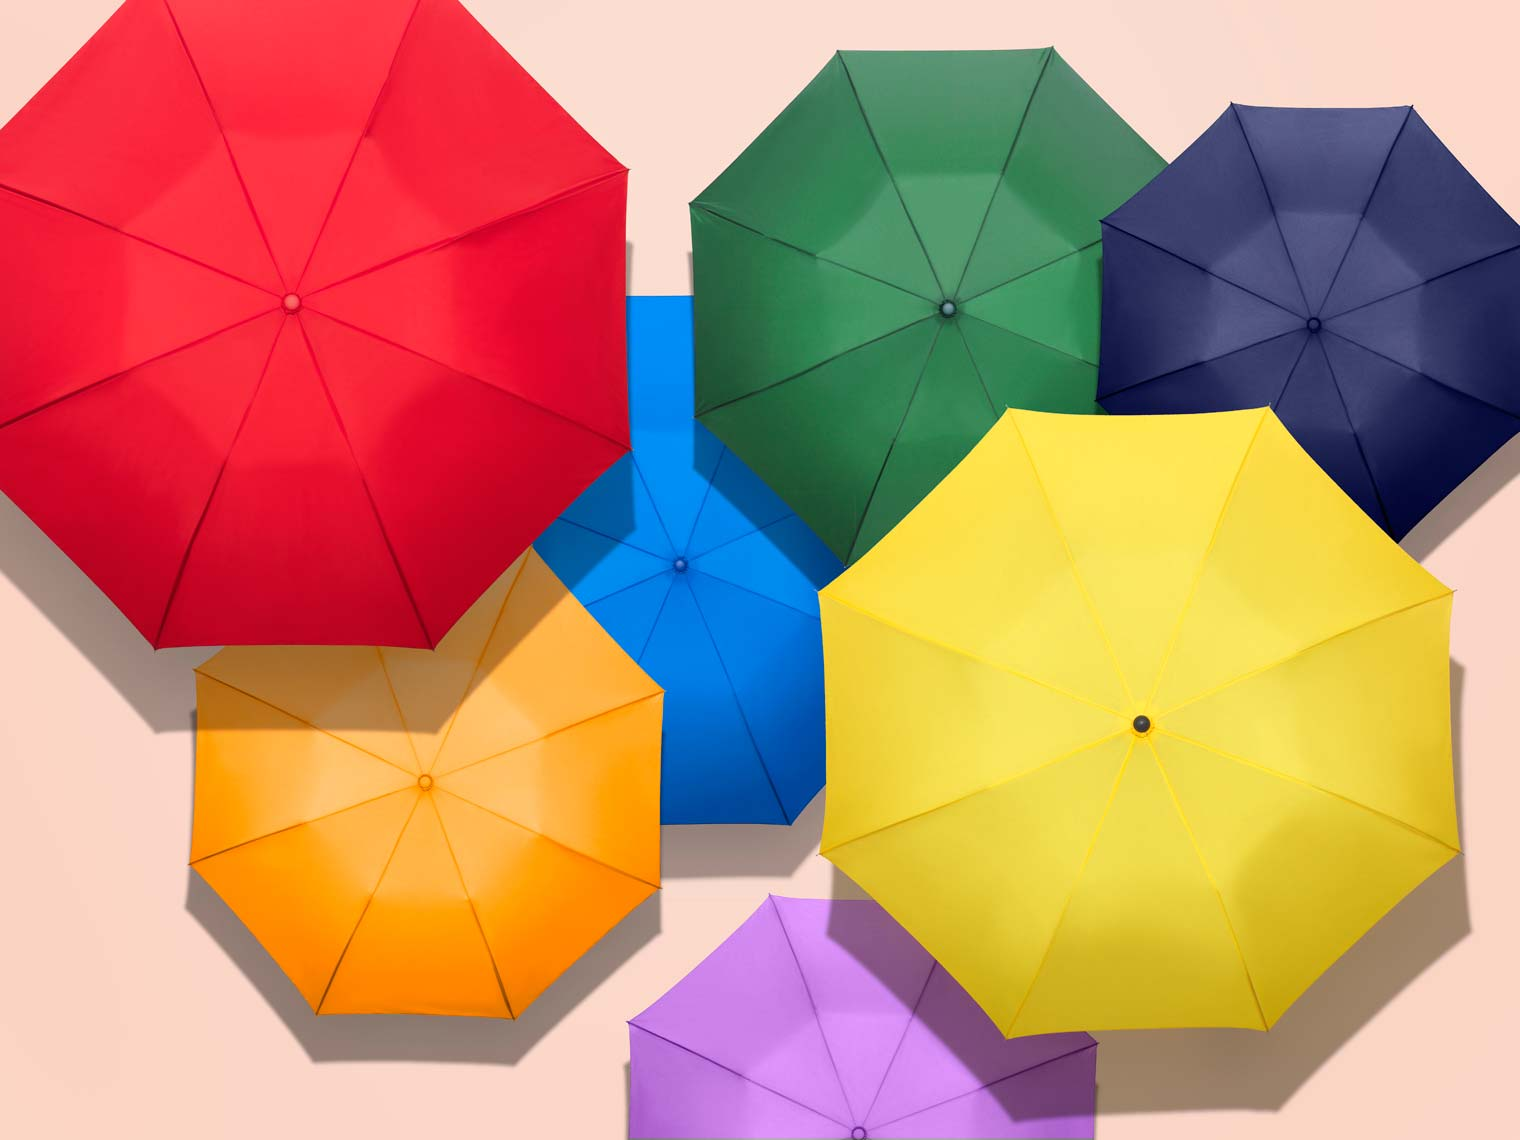 Graphic_Umbrella_Still_Life